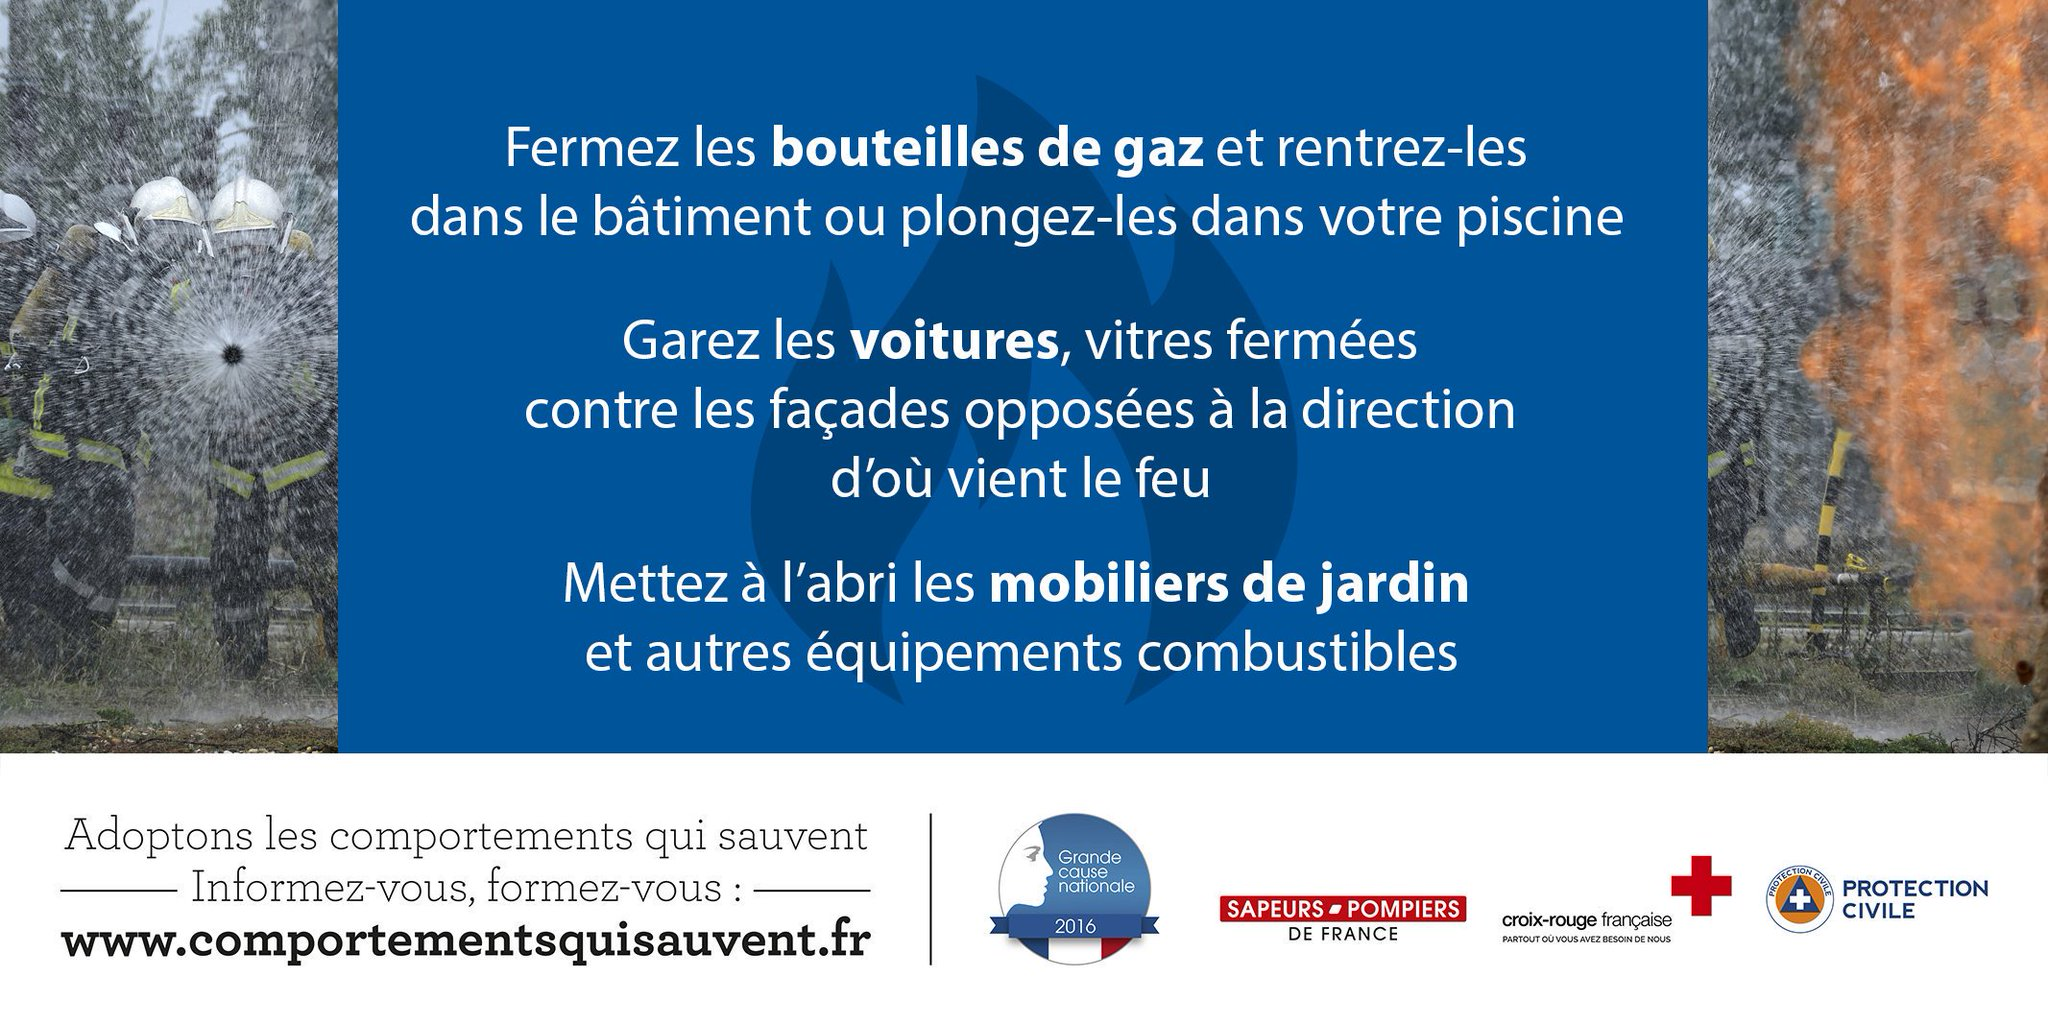 Minist re de l 39 int rieur on twitter for Interieur gouv fr